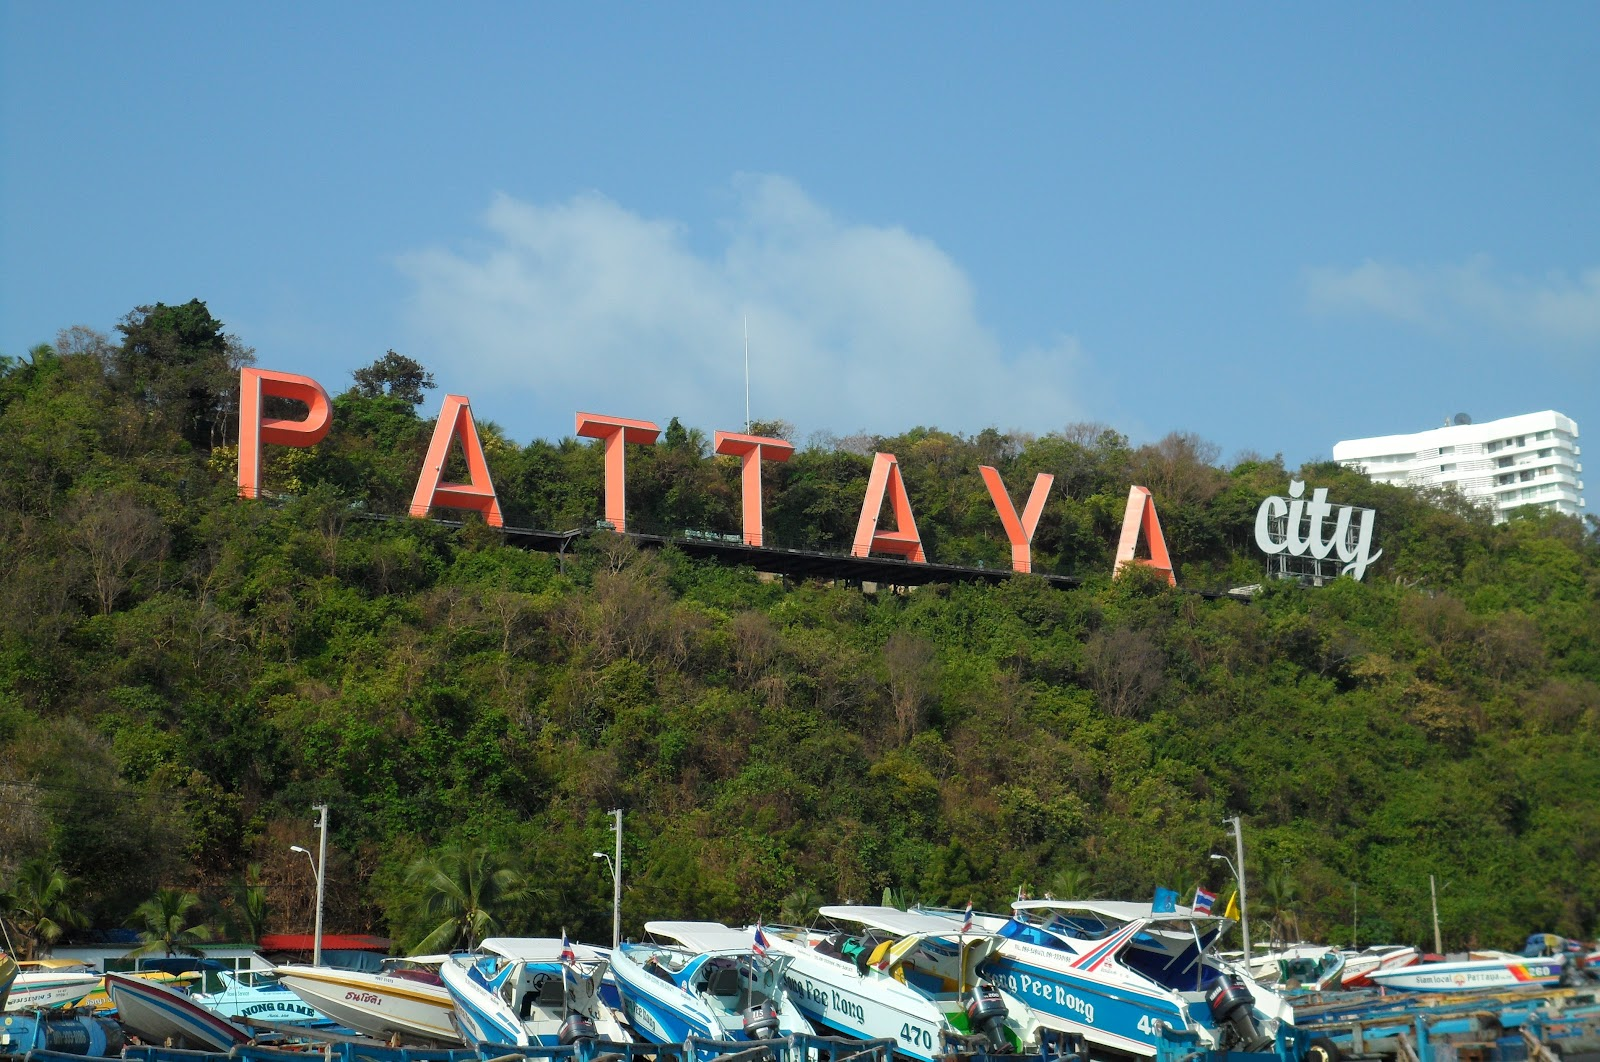 Big pattaya city